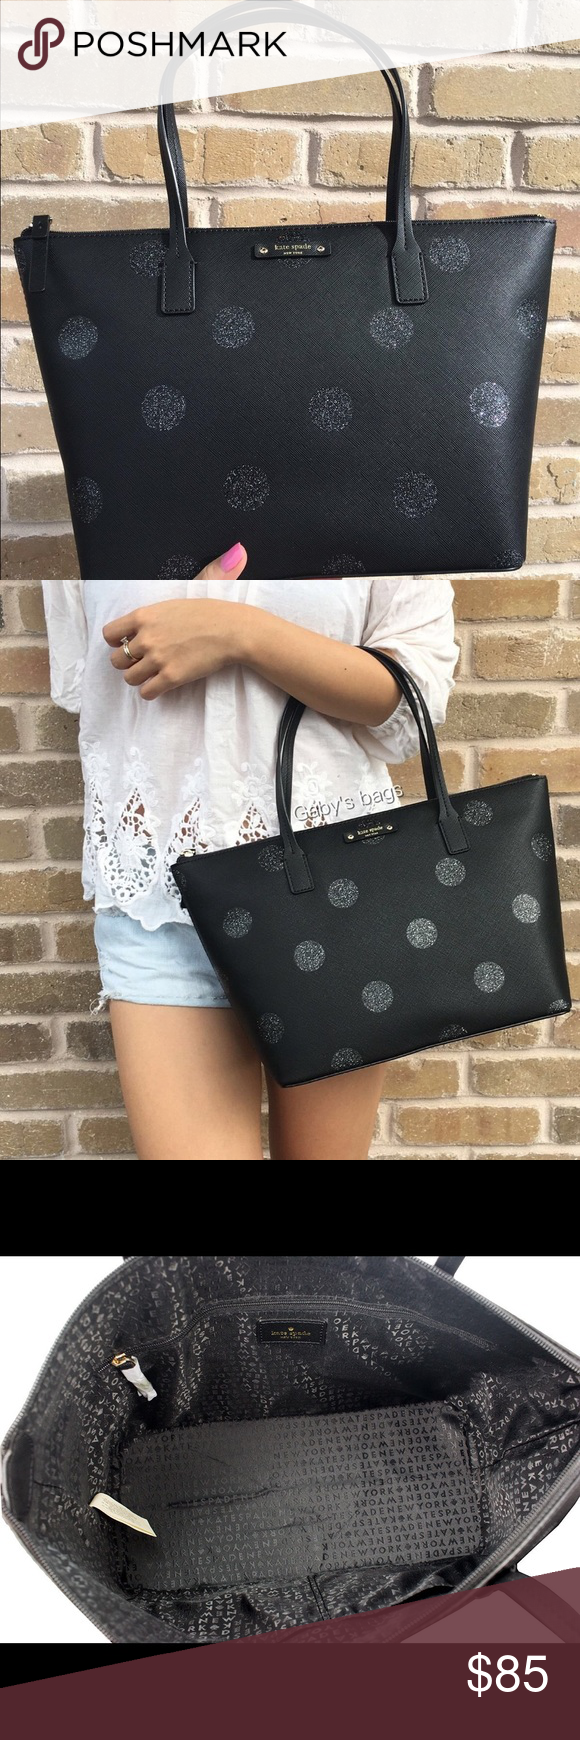 Kate Spade Haven Lane Hani Brand new with tags! Kate Spade Haven Lane Hani purse, the perfect gift for someone this Christmas! The second picture is not mine, just using it for size reference! Will also have this listed on Ⓜ️ercari as well a little cheaper! Will ship out the same day! 💕 kate spade Bags